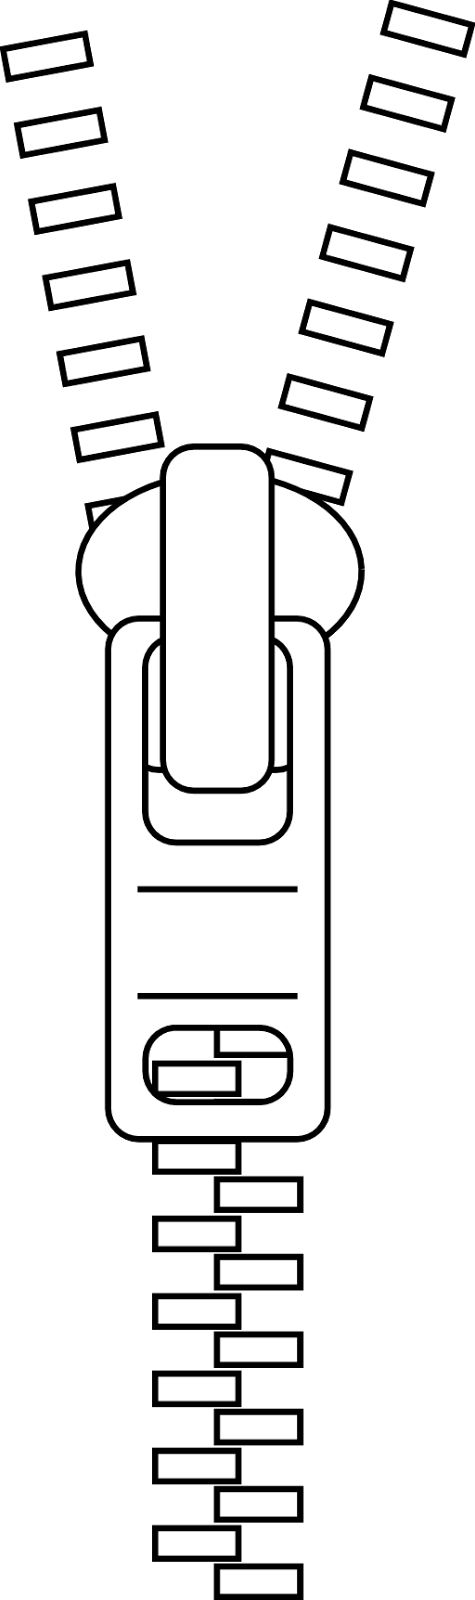 Zipper Black And White Png - Black And White Zipper Clipart - Clip Art Library